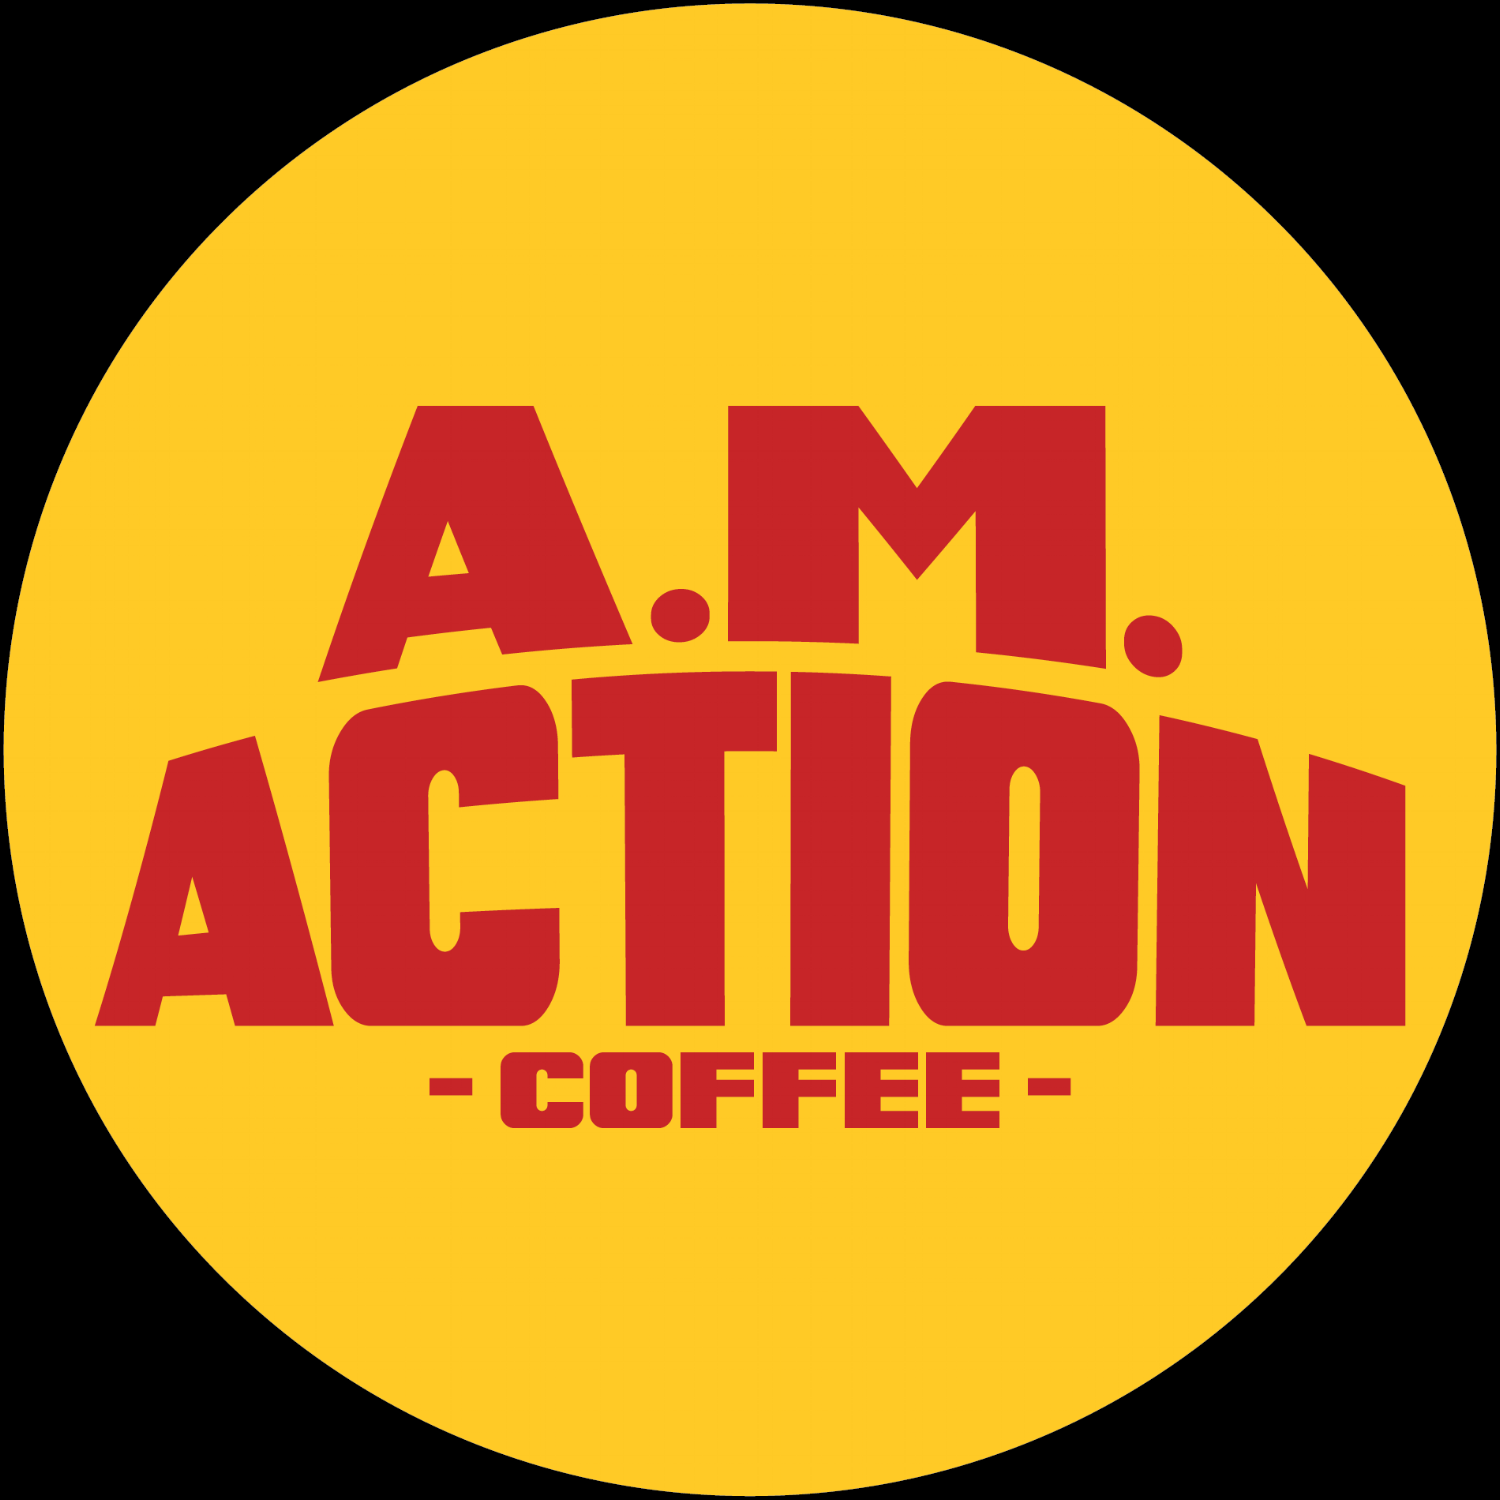 A.M. Action Coffee